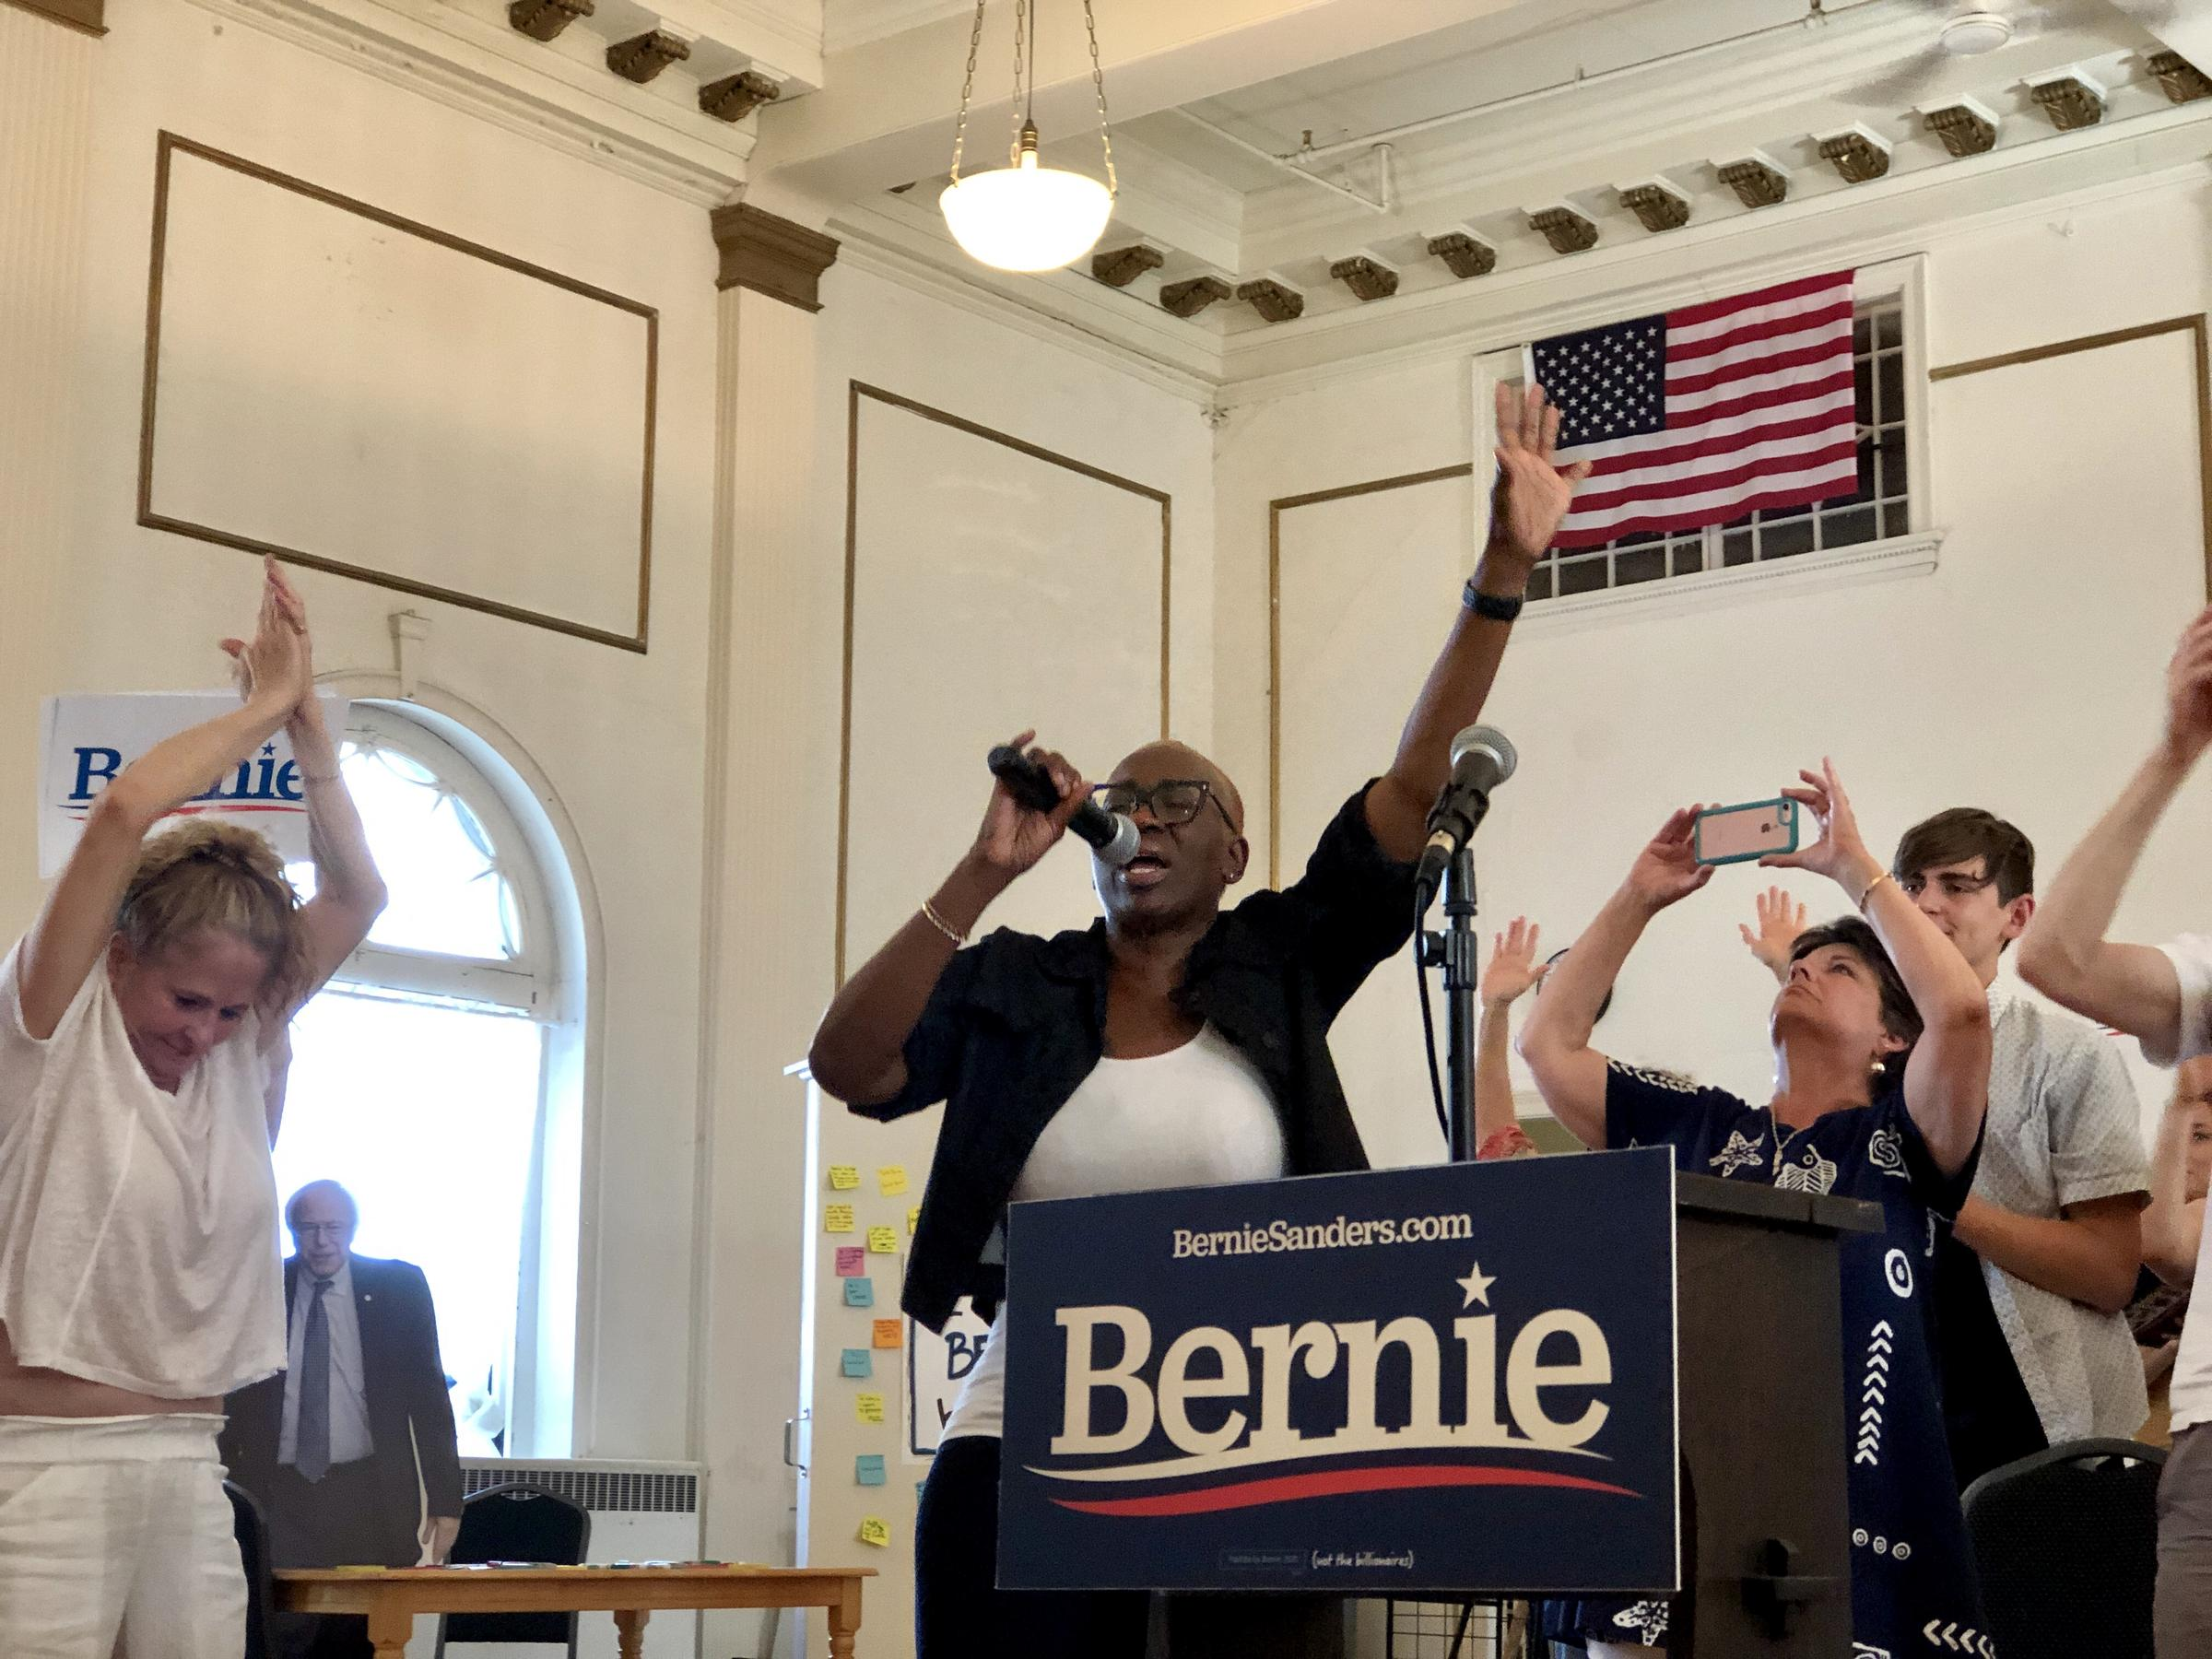 Bernie Sanders Revisits Portland, But He Faces More